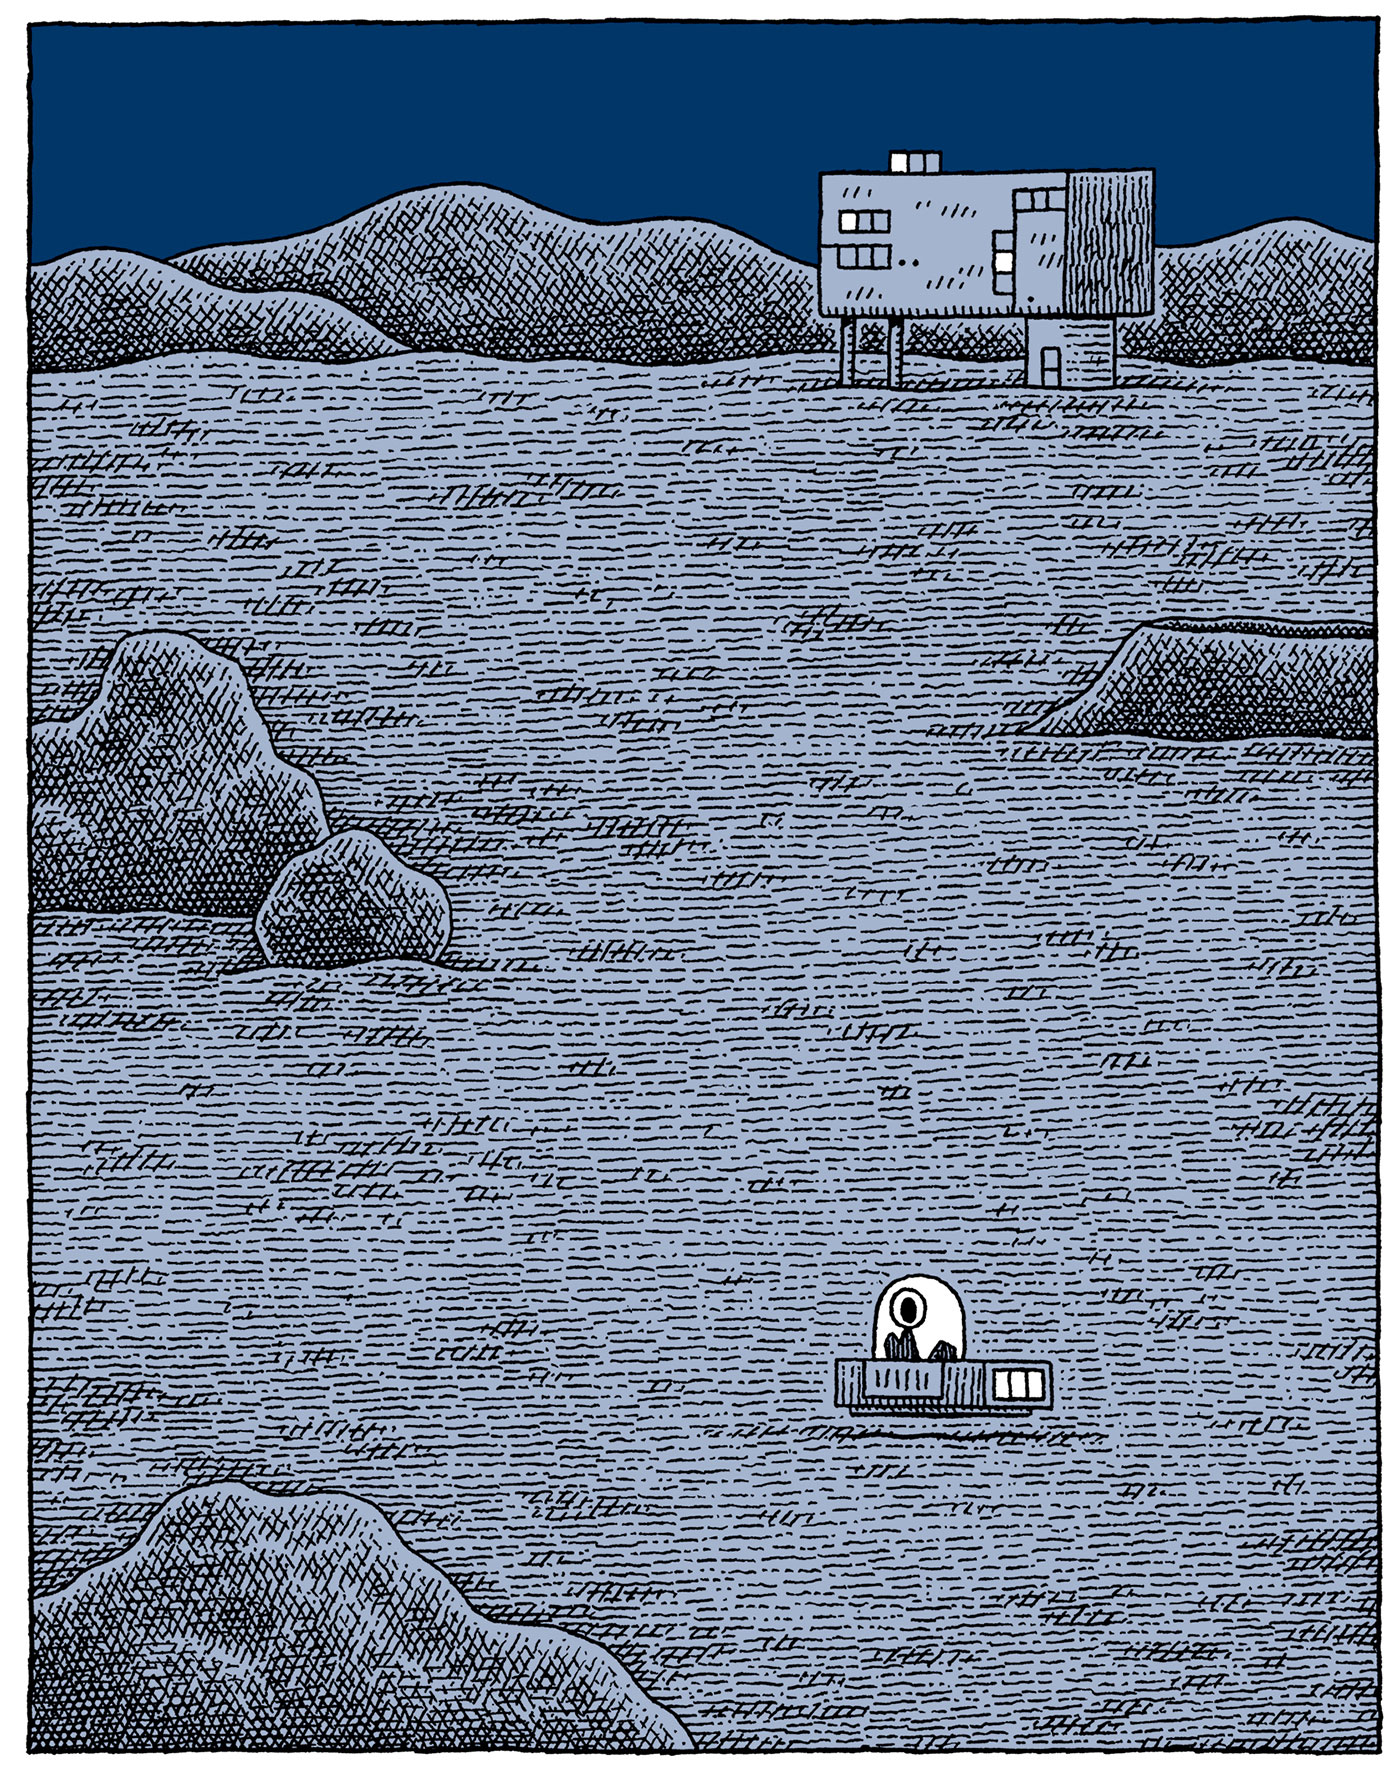 tom-gauld-mooncop-06